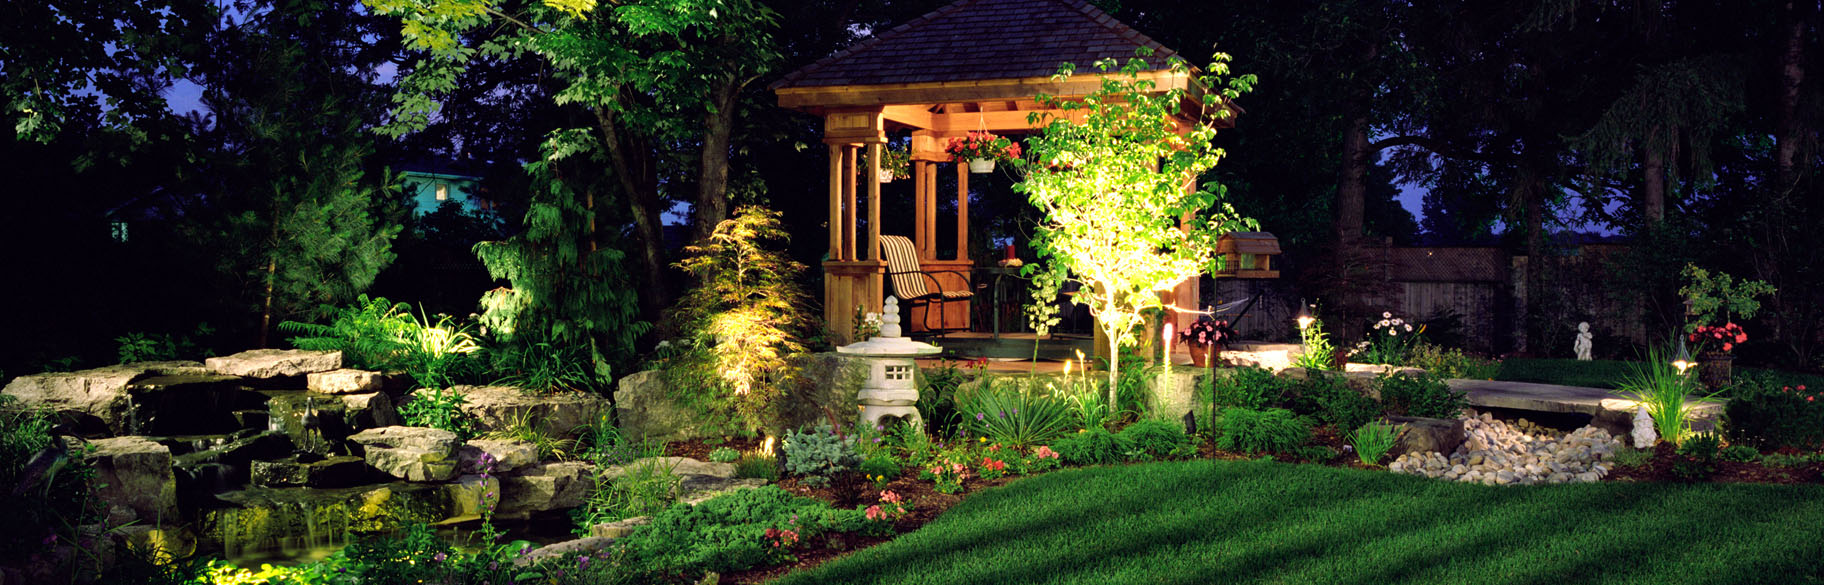 landscaping-landscape-lighting-tulsa-01